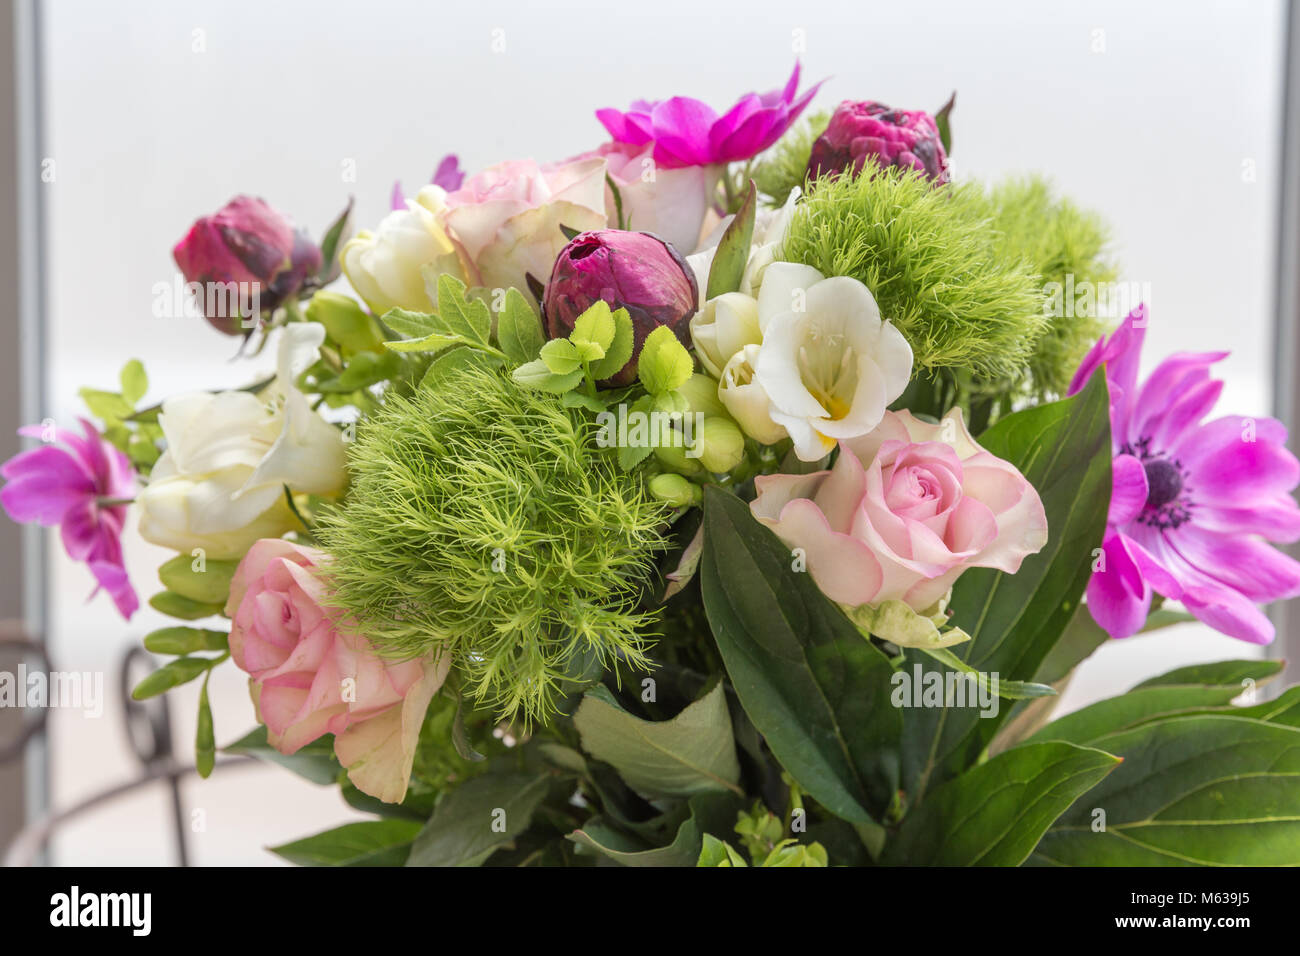 Beautiful bouquet of spring flowers pink white and purple tones beautiful bouquet of spring flowers pink white and purple tones roses anemones freesias carnations in vase mothers birthday valentines wome izmirmasajfo